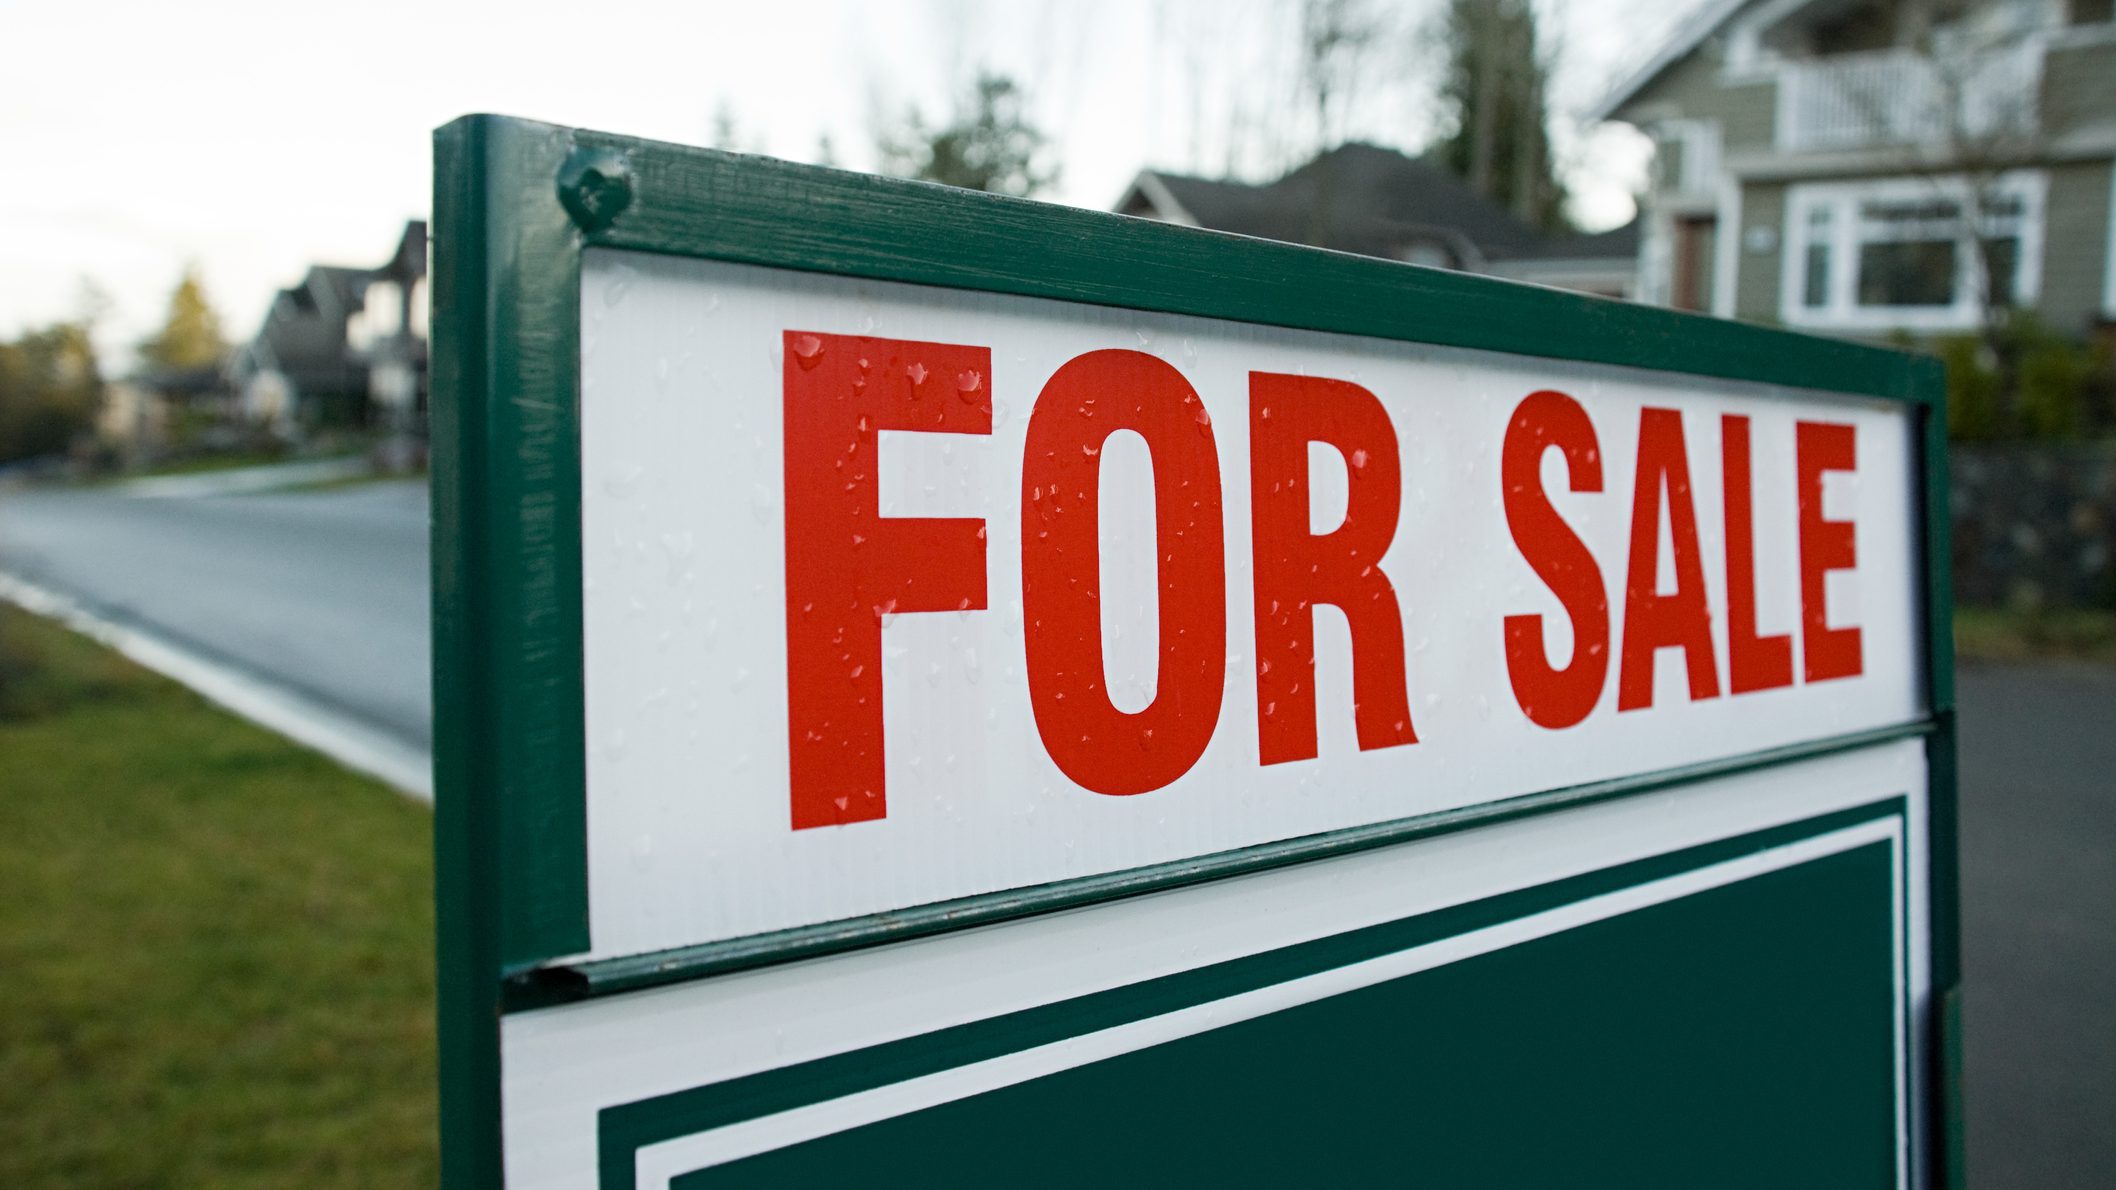 For sale sign (Getty)